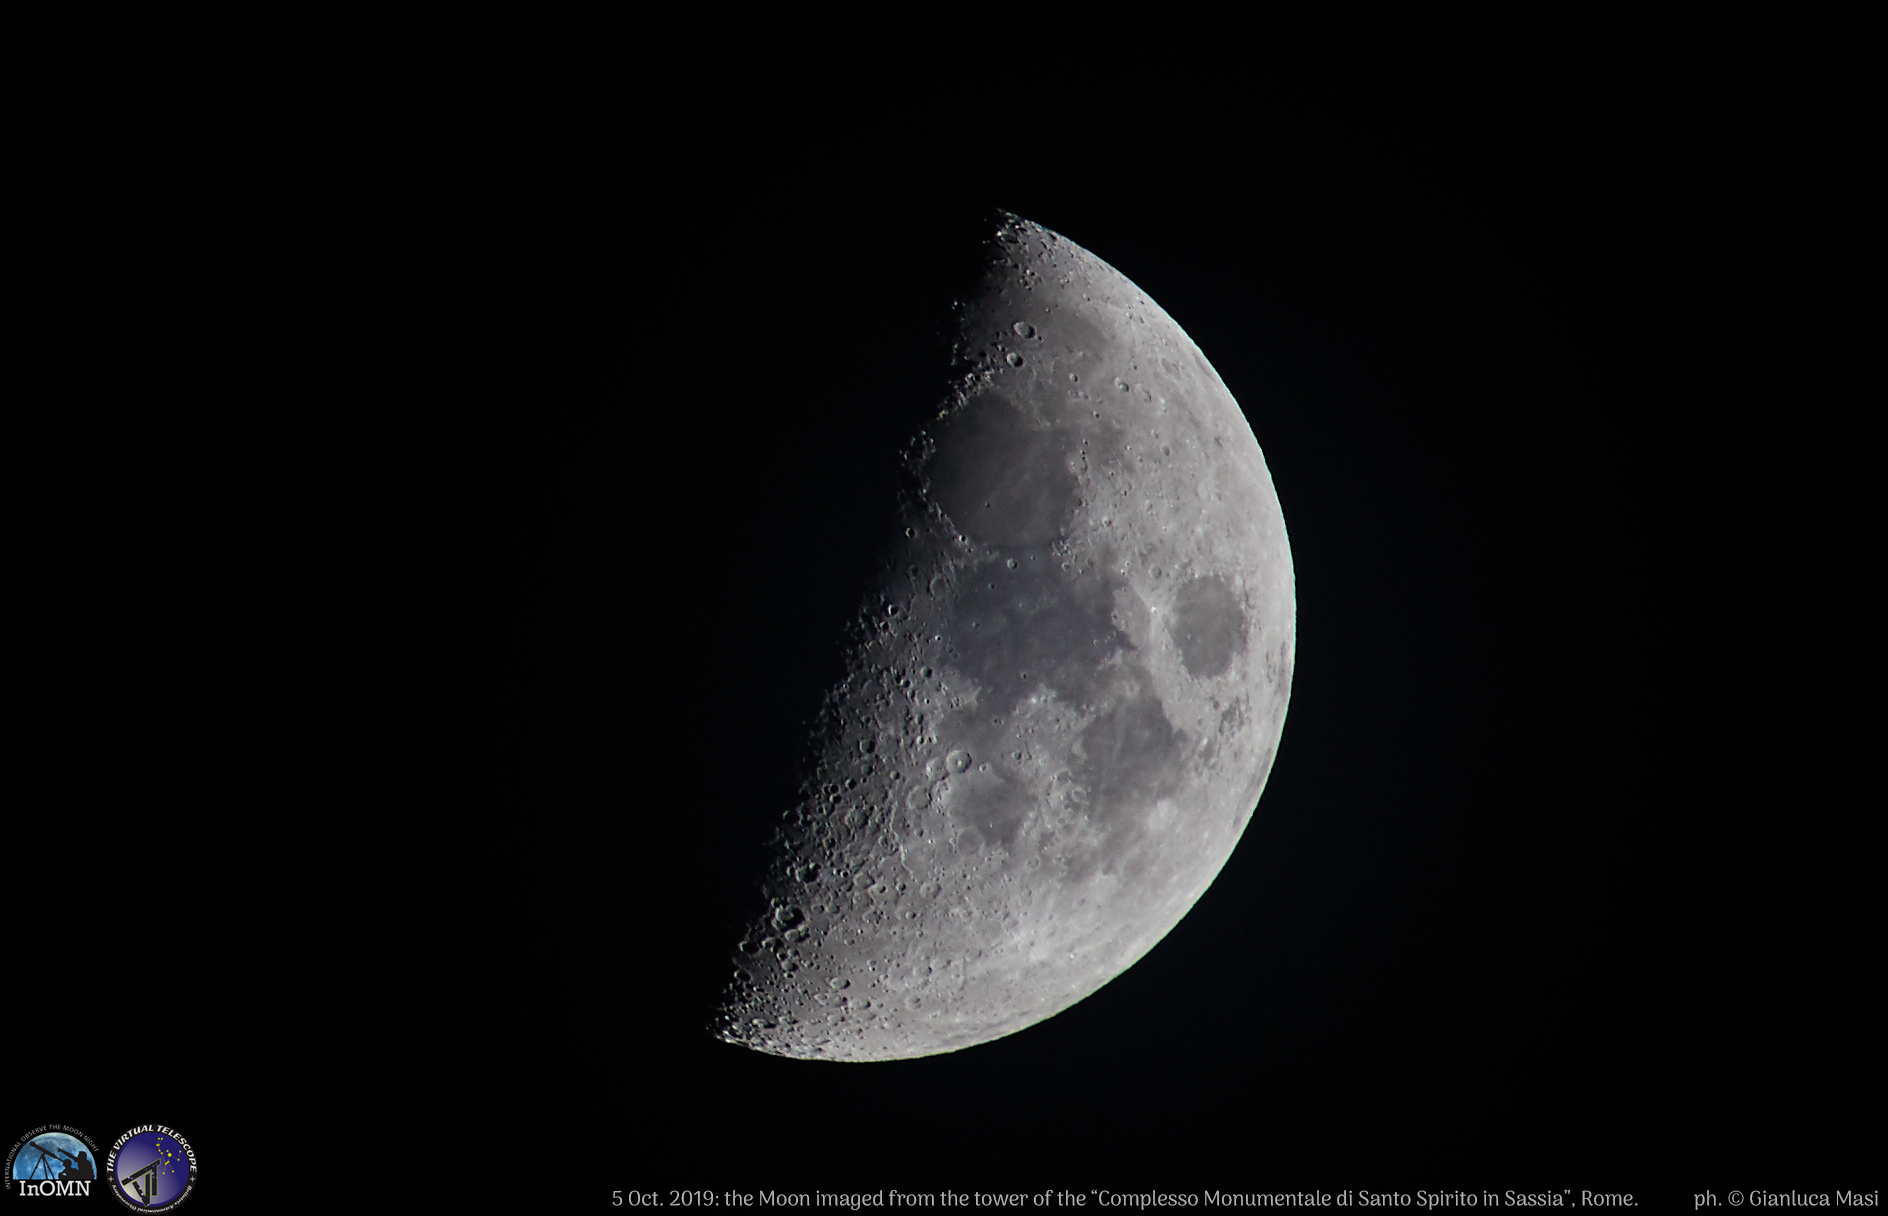 The Moon shows some of its beautiful craters and dark seas.